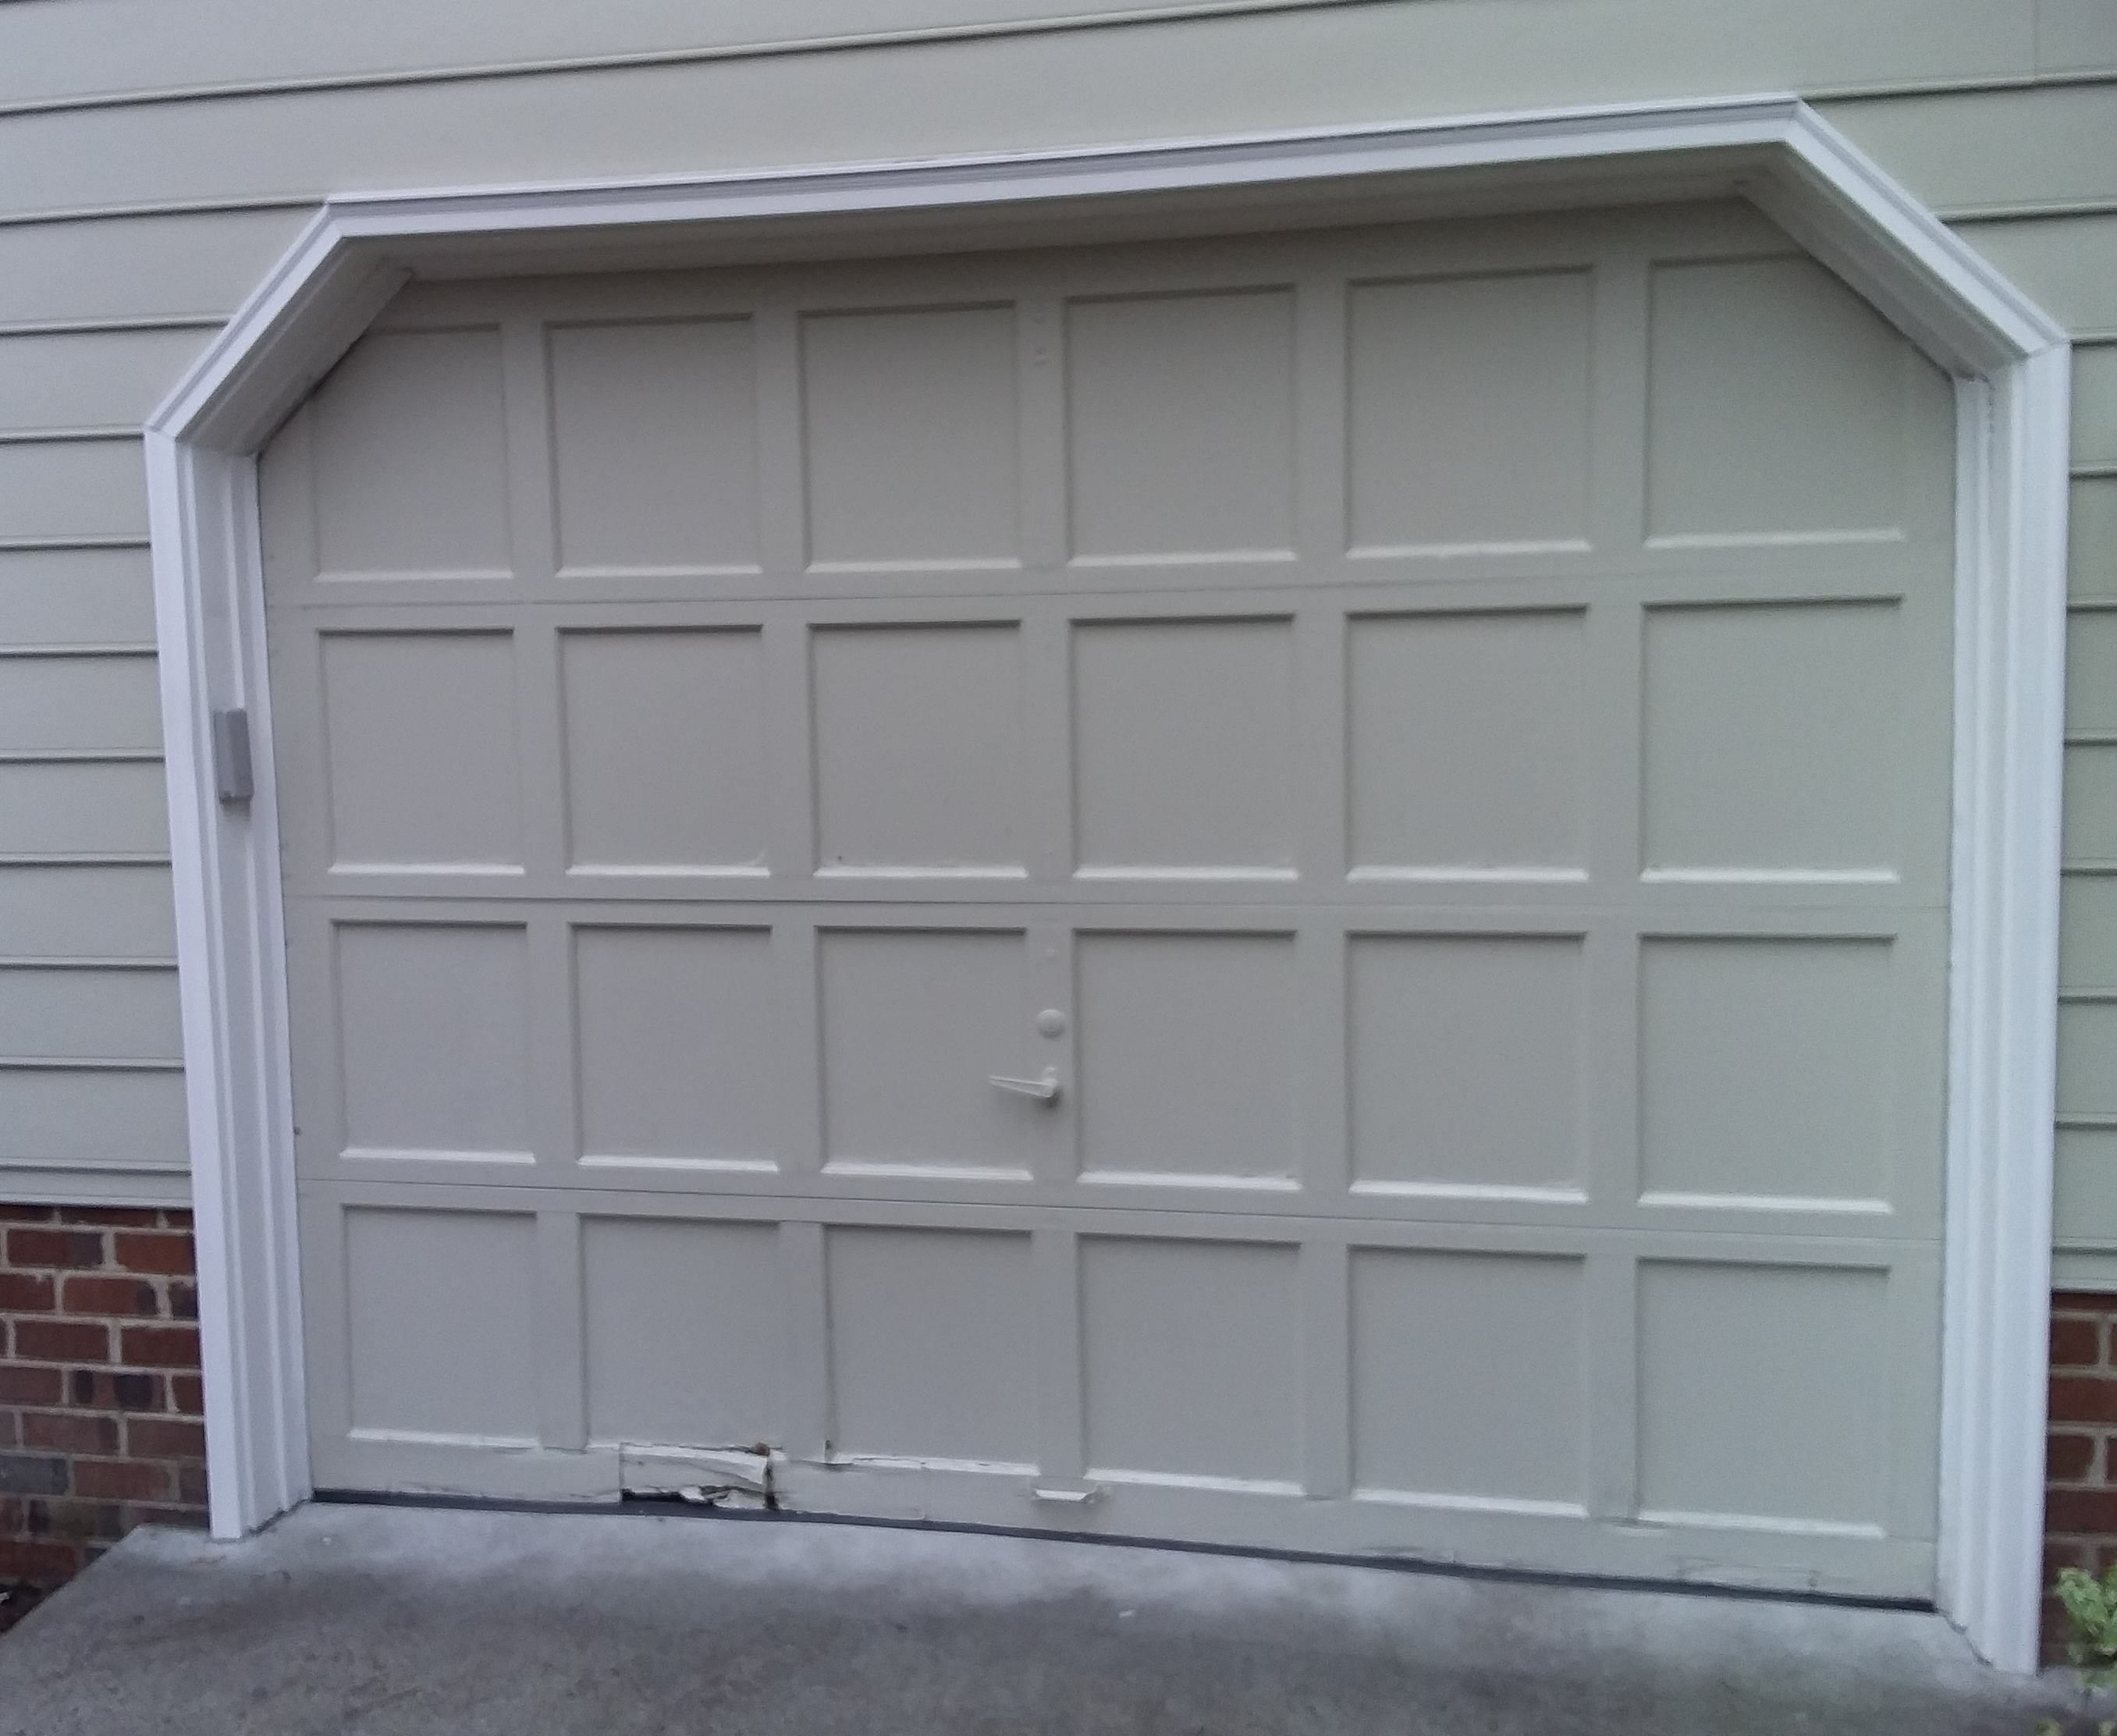 9x7 Model 2216 Raised Short Panel Garage Door Installed By The Richmond Store Teamappledoor Before After In 2020 Garage Doors Door Installation Garage Door Panels